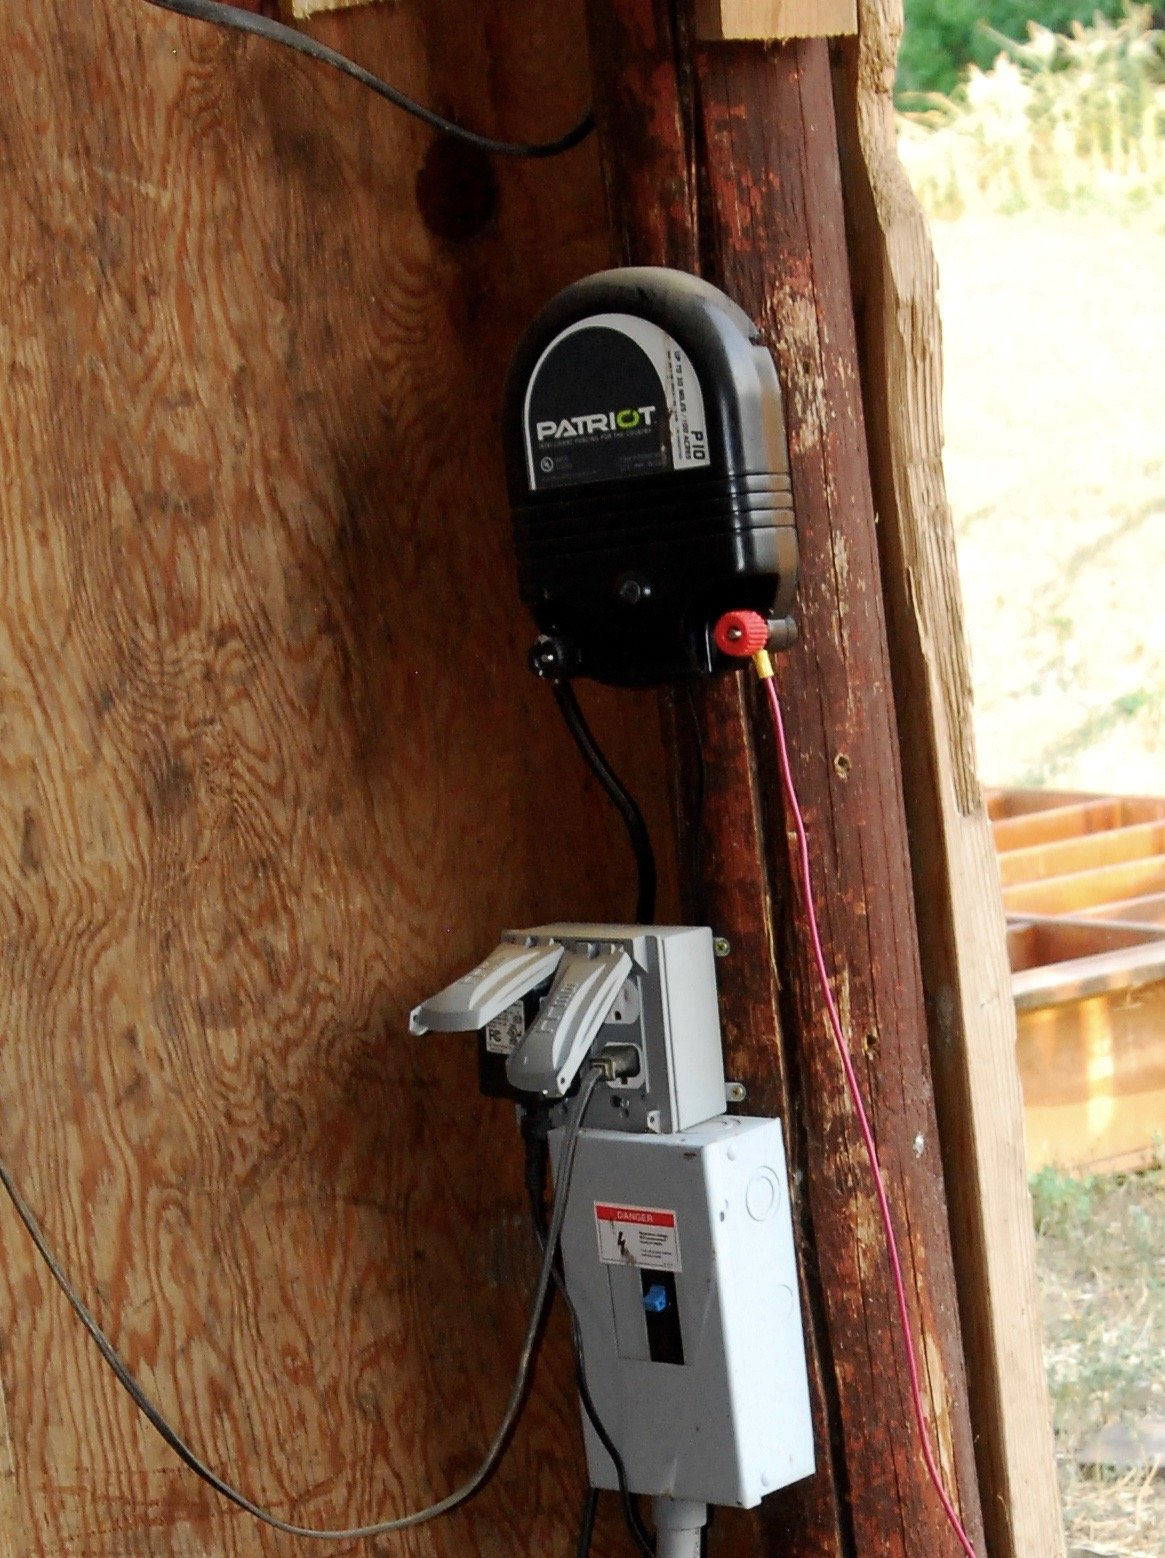 Patriot electric fence charger